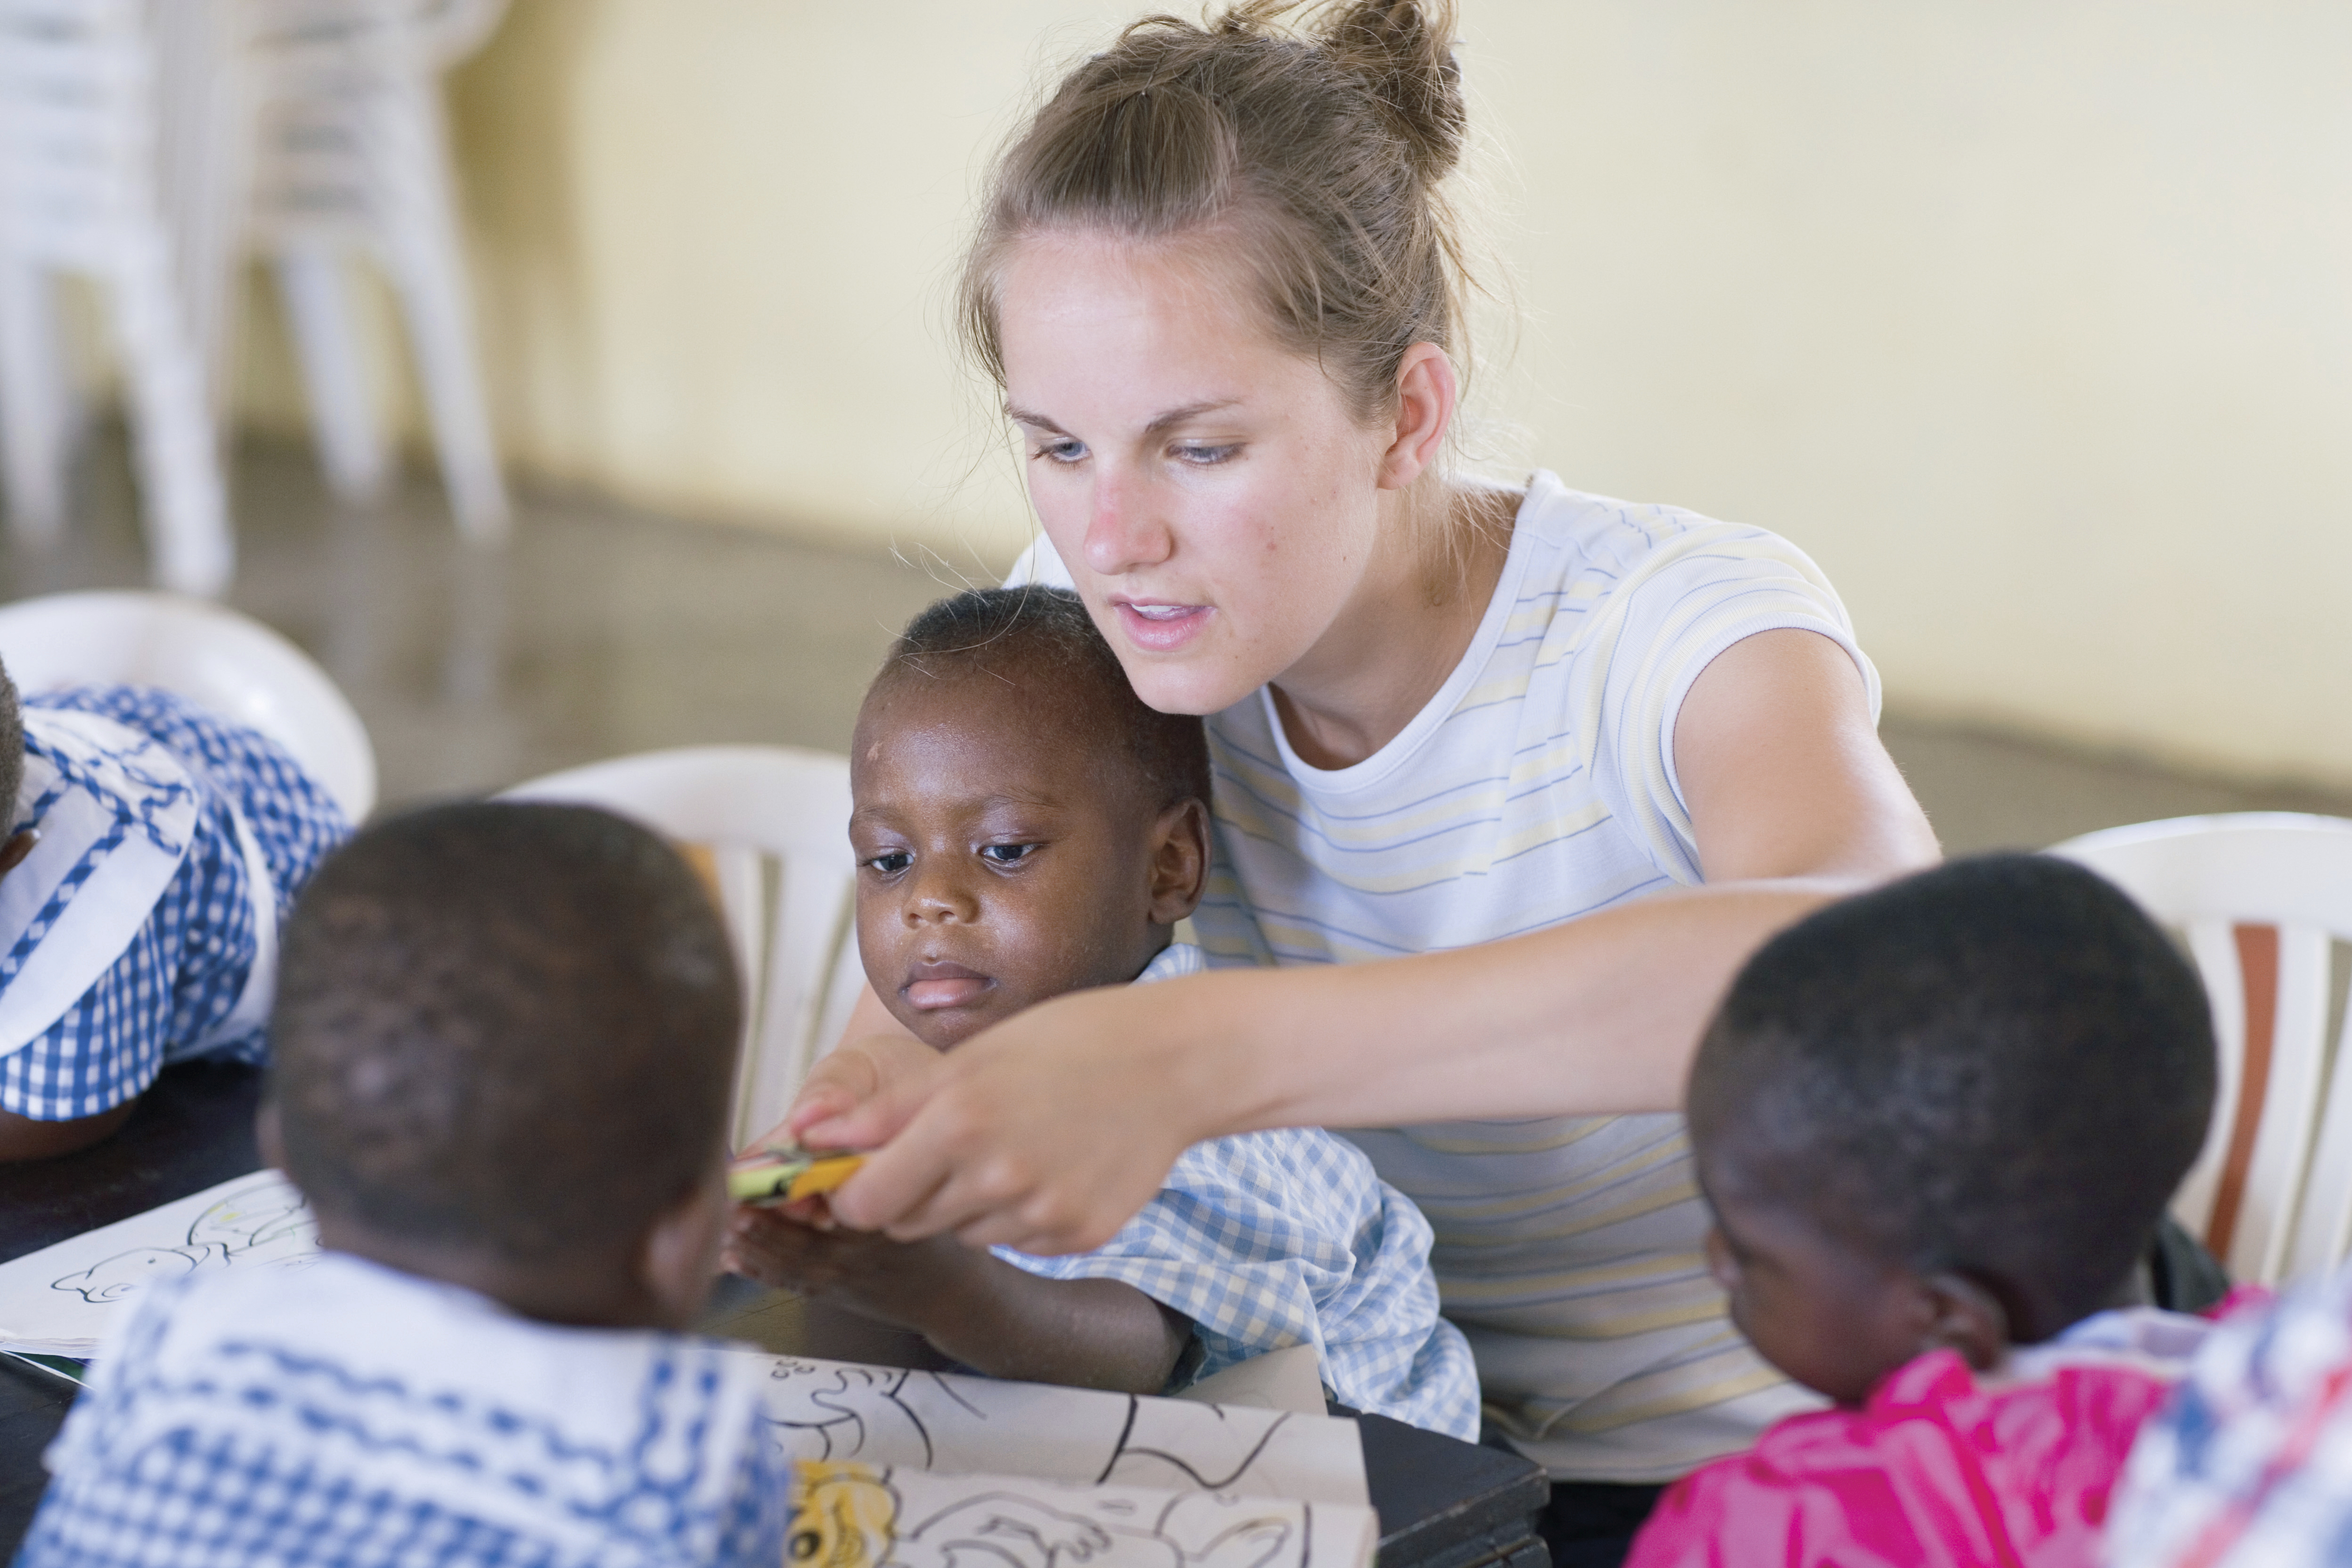 A woman sitting at a table in an orphanage and coloring pictures with three African children.